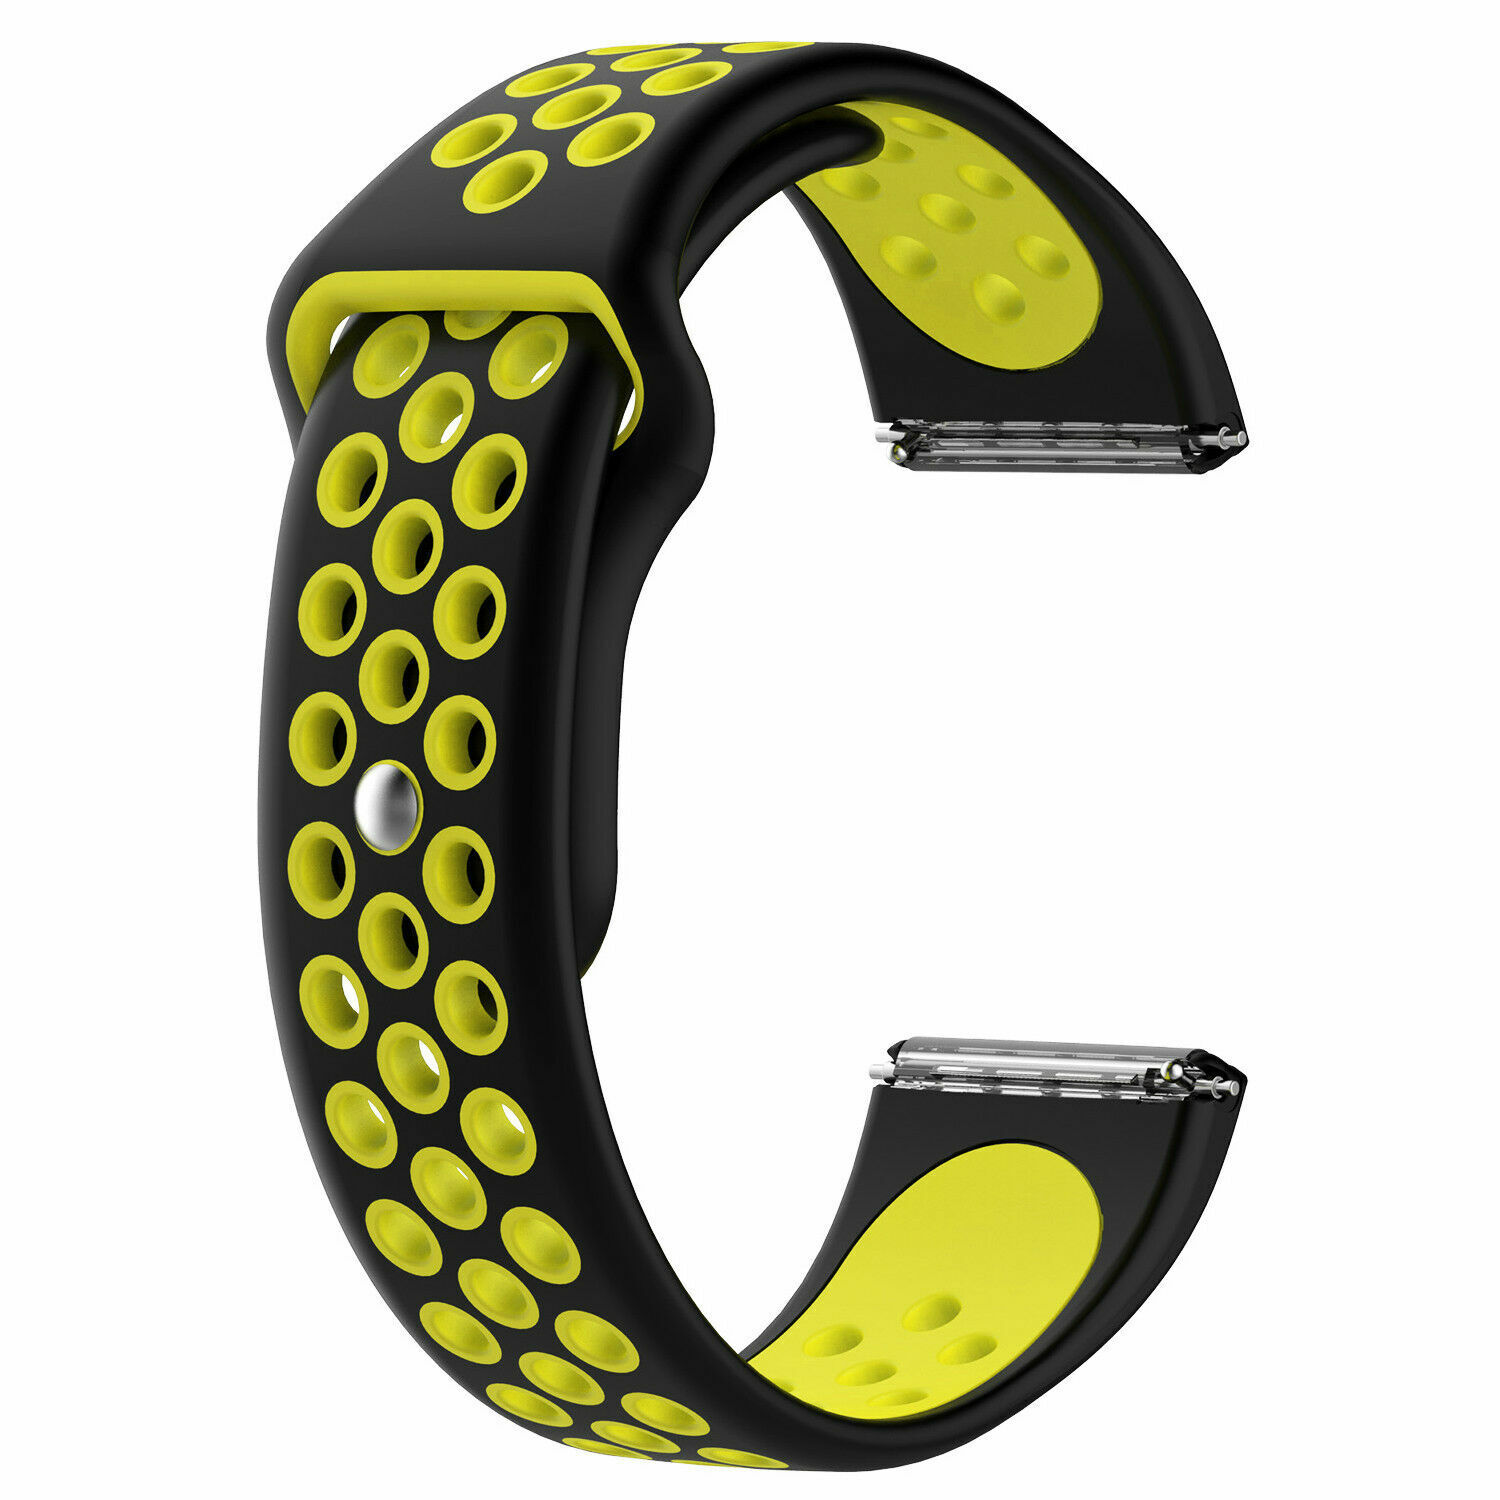 Sport Silicon Replacement Wristband Strap Breathable Watch Band For Fitbit Versa 7